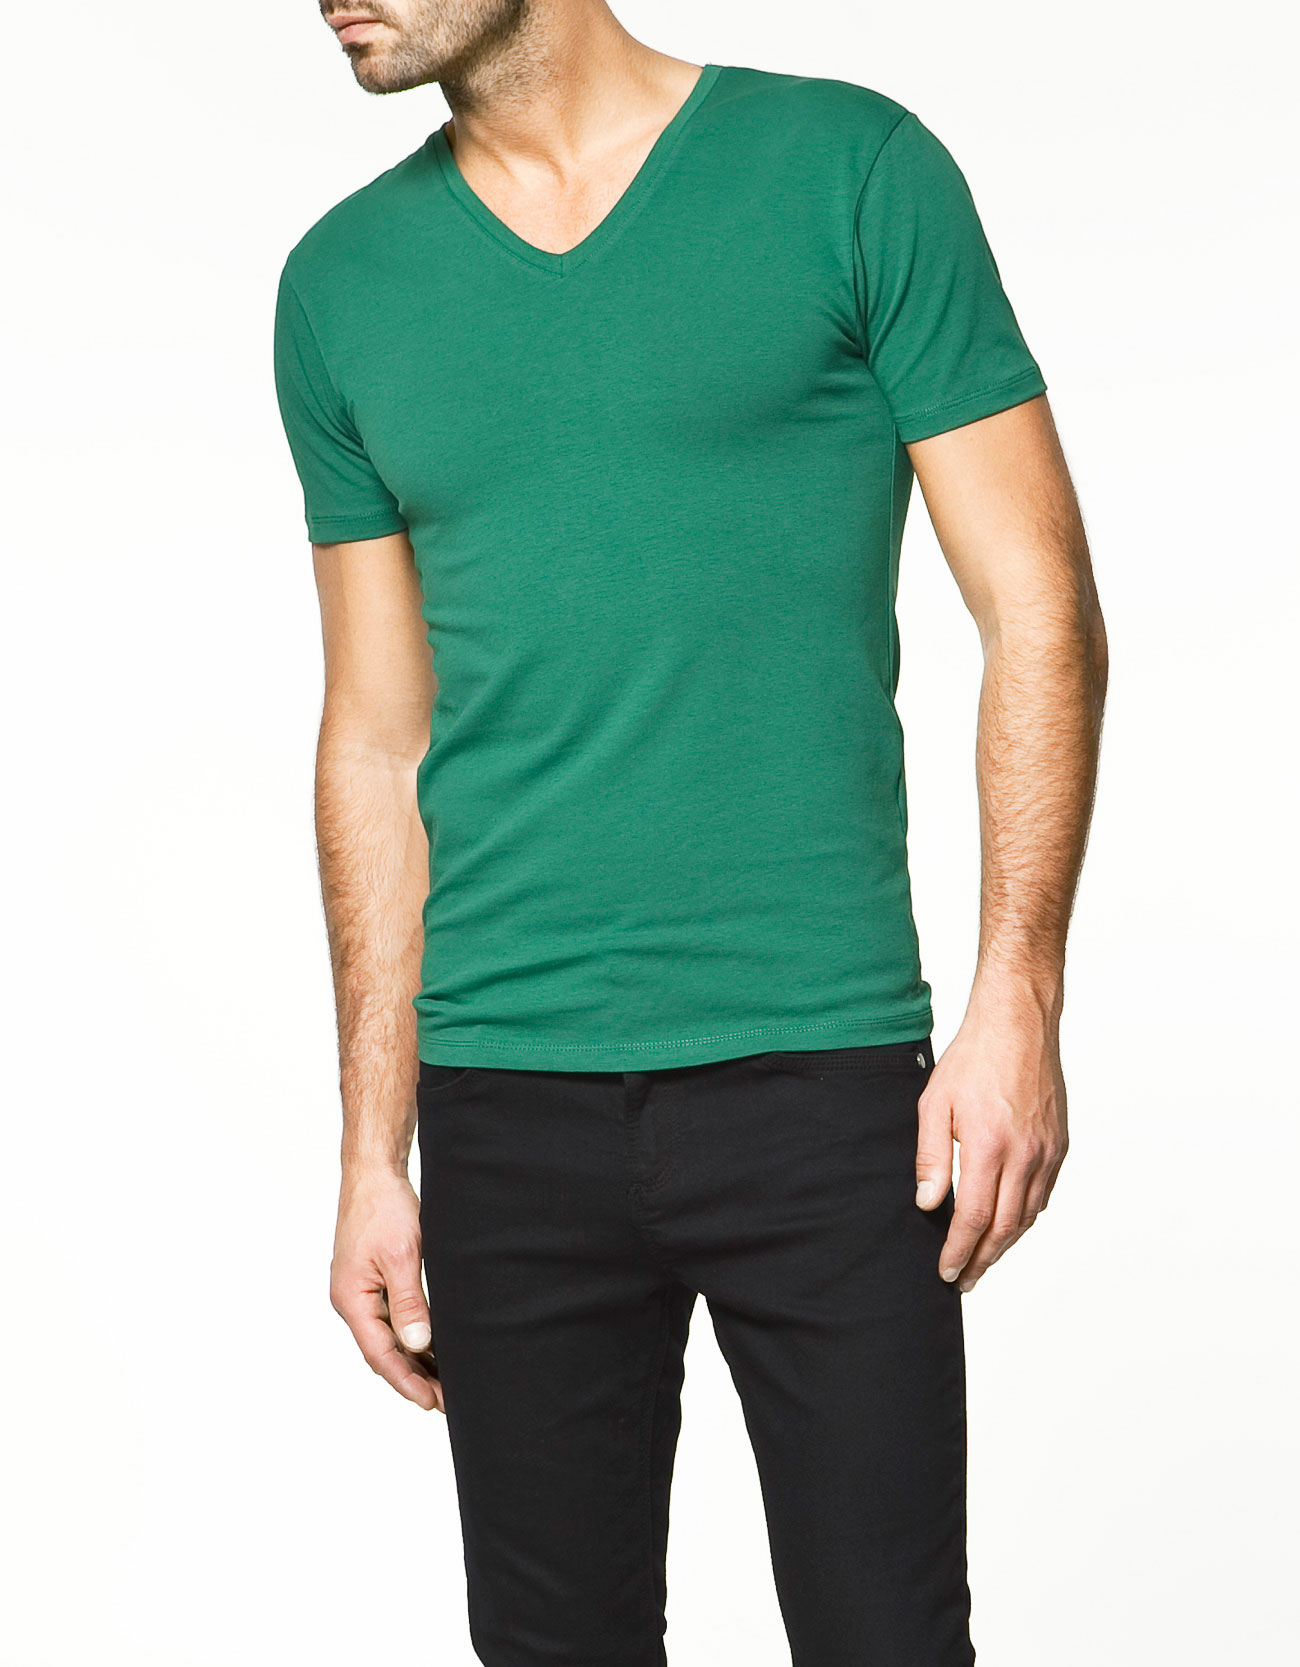 Zara Super Slim Fit T Shirt In Green For Men Lyst